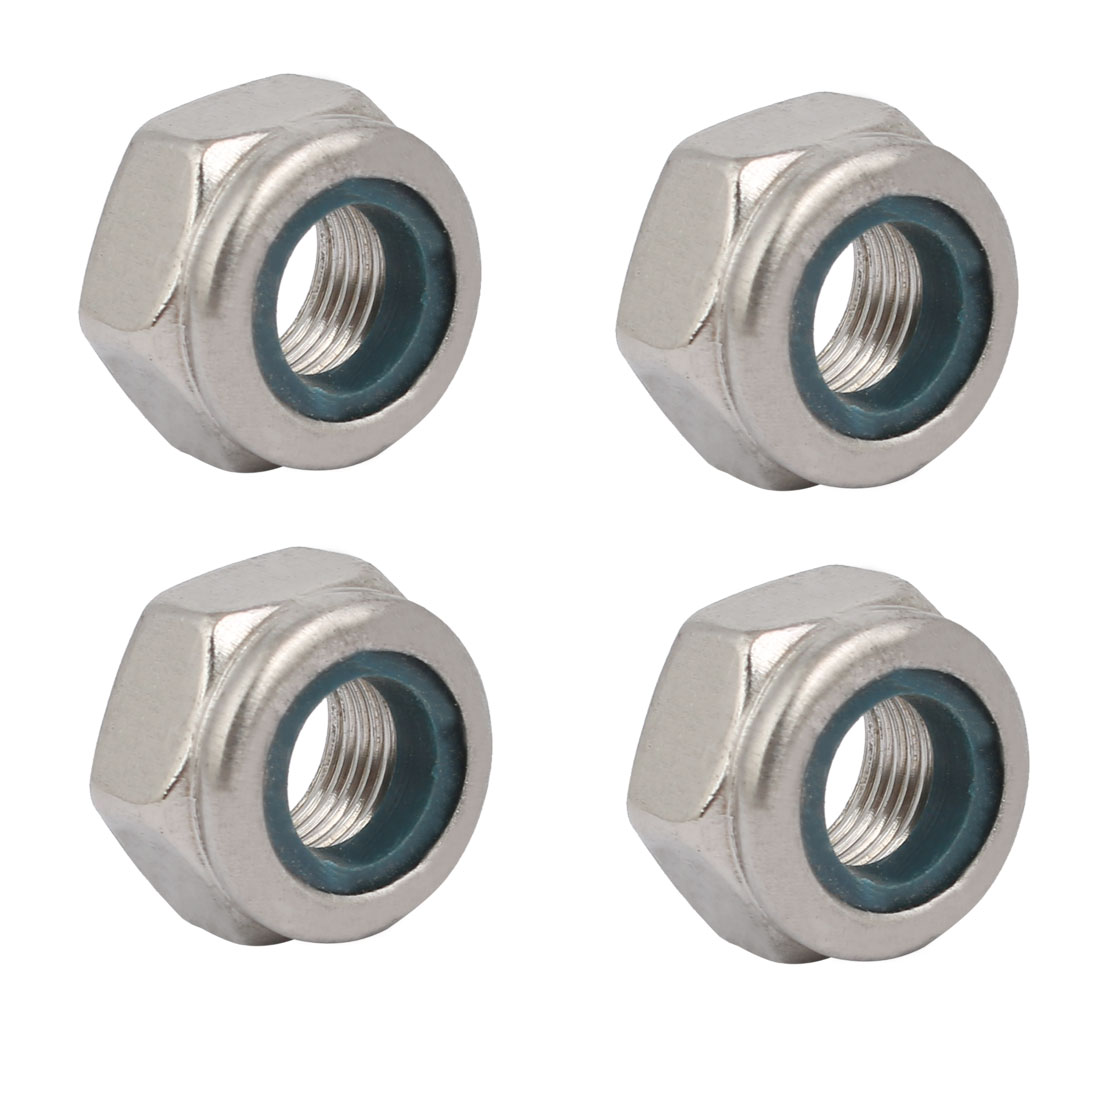 4pcs M10 x 1mm Pitch Metric Fine Thread 304 Stainless Steel Hex Lock Nuts